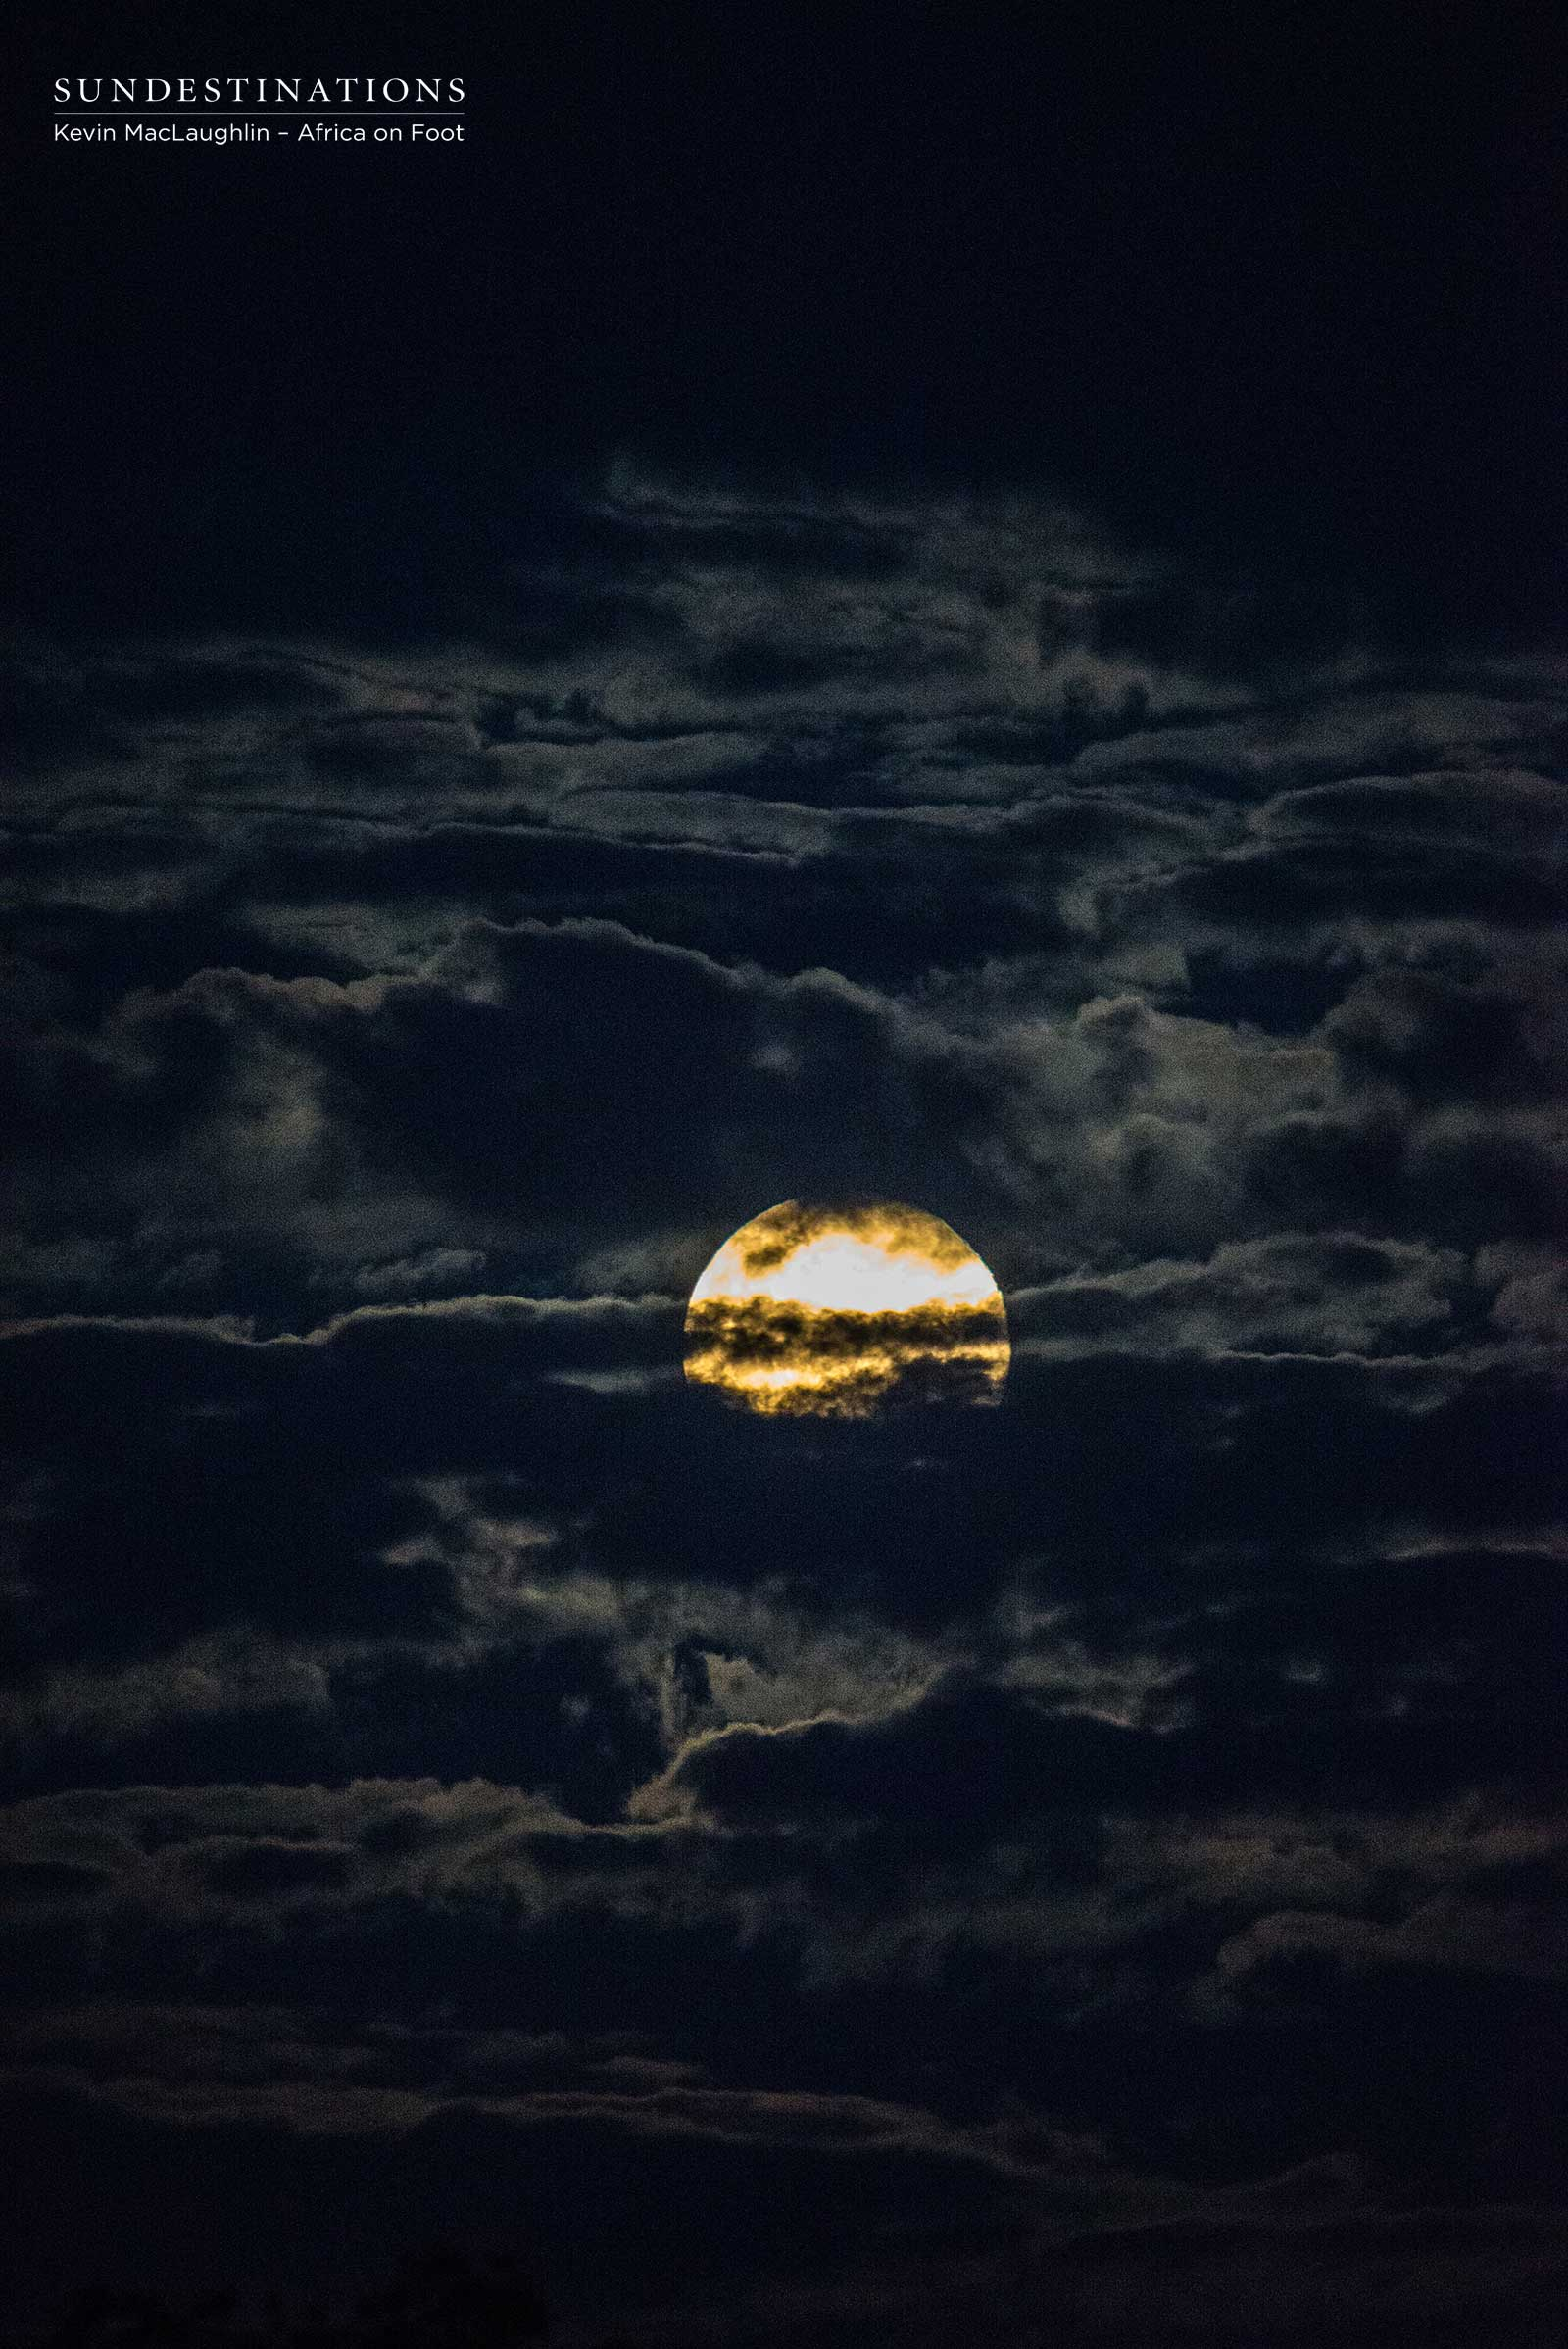 Moon at Africa on Foot